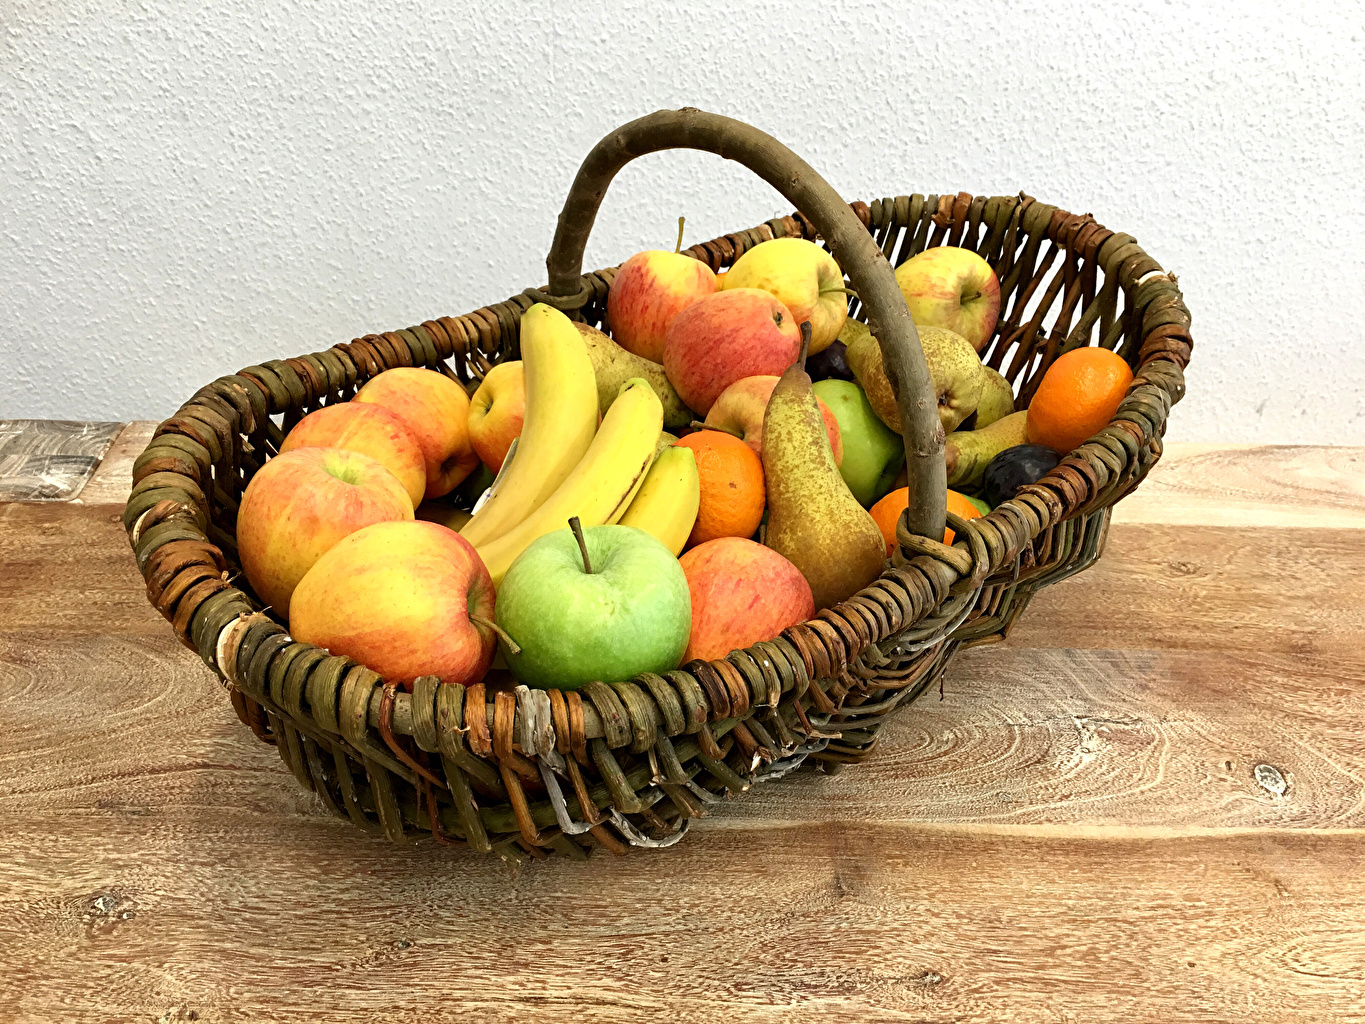 Pictures Pears Apples Bananas Wicker basket Food Fruit